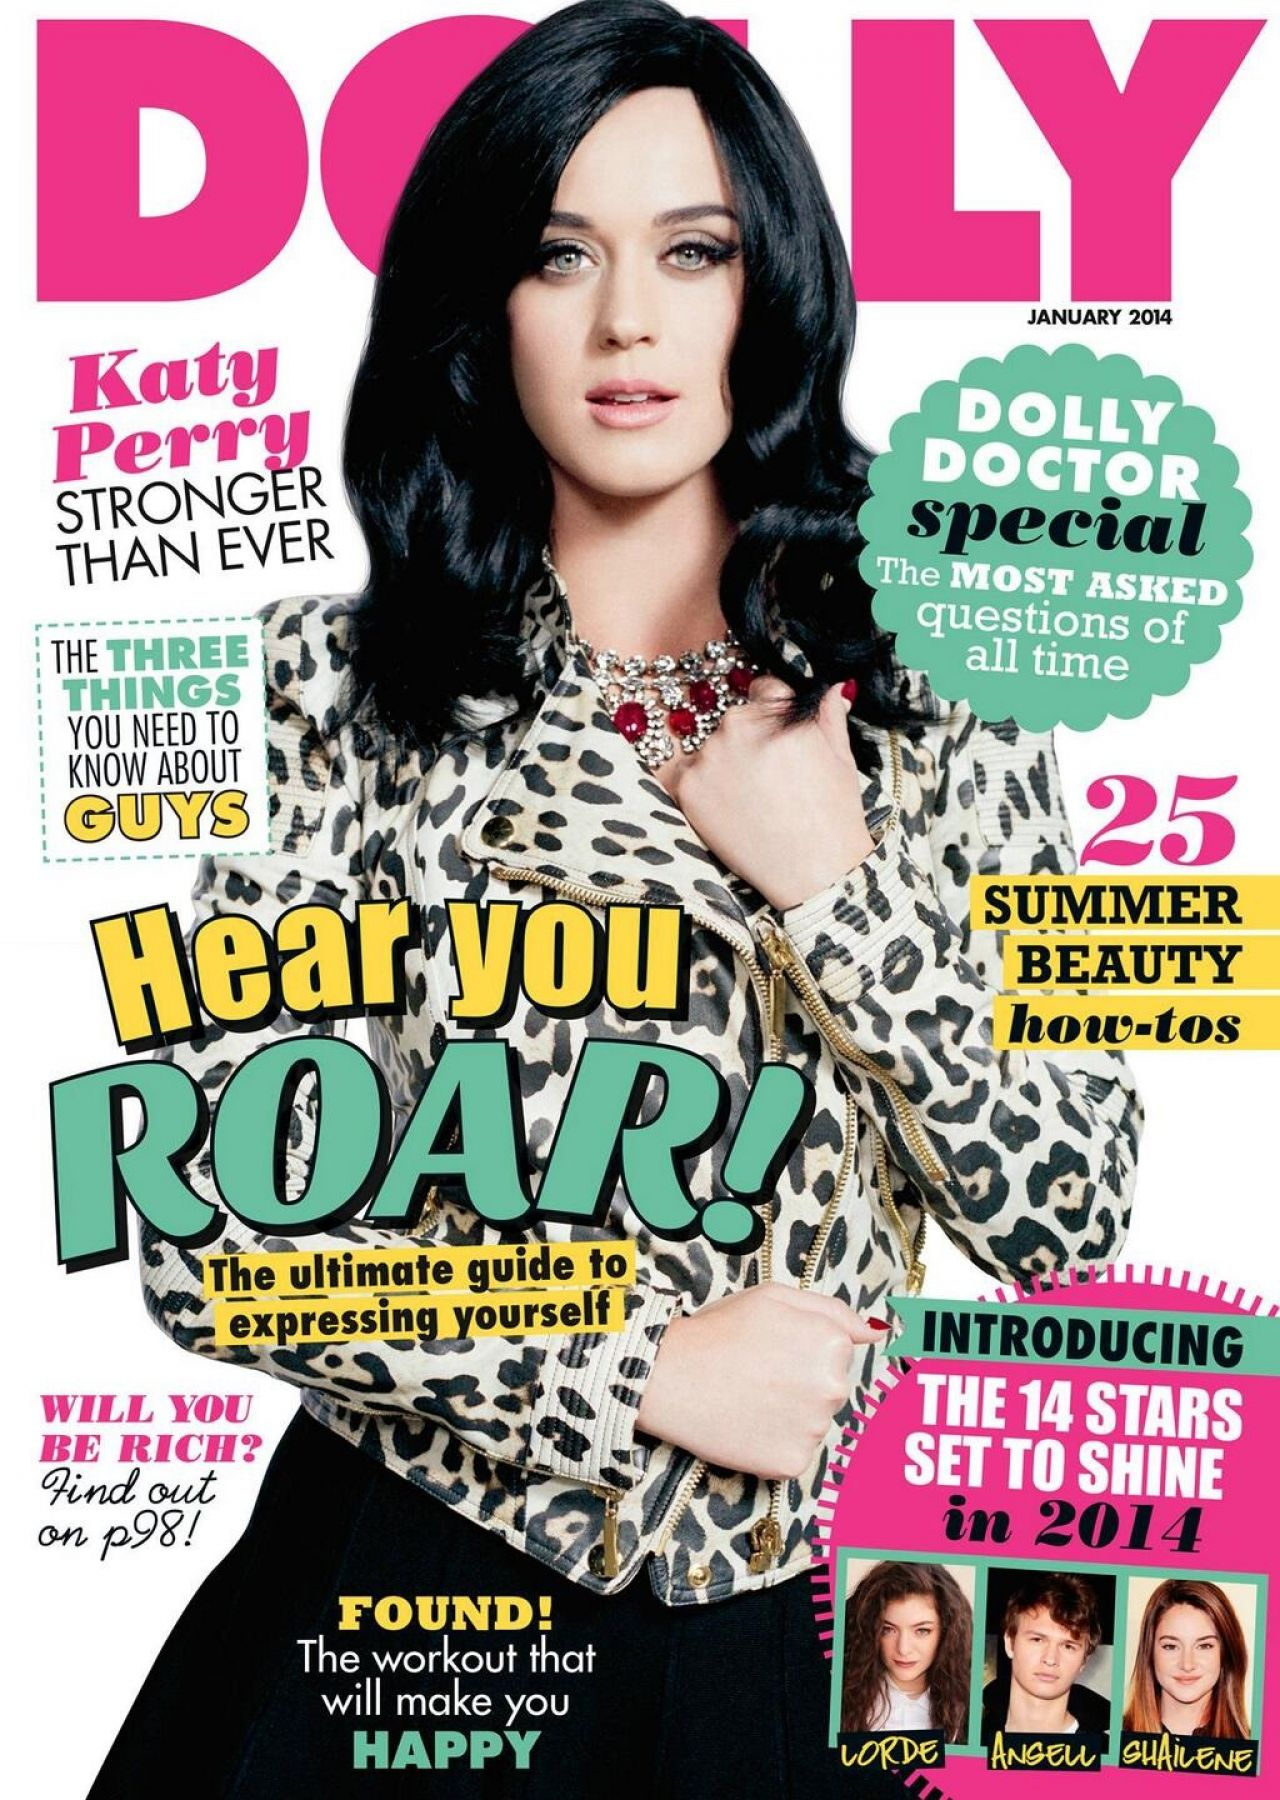 Katy Perry - DOLLY Magazine (Australia) - January 2014 Issue